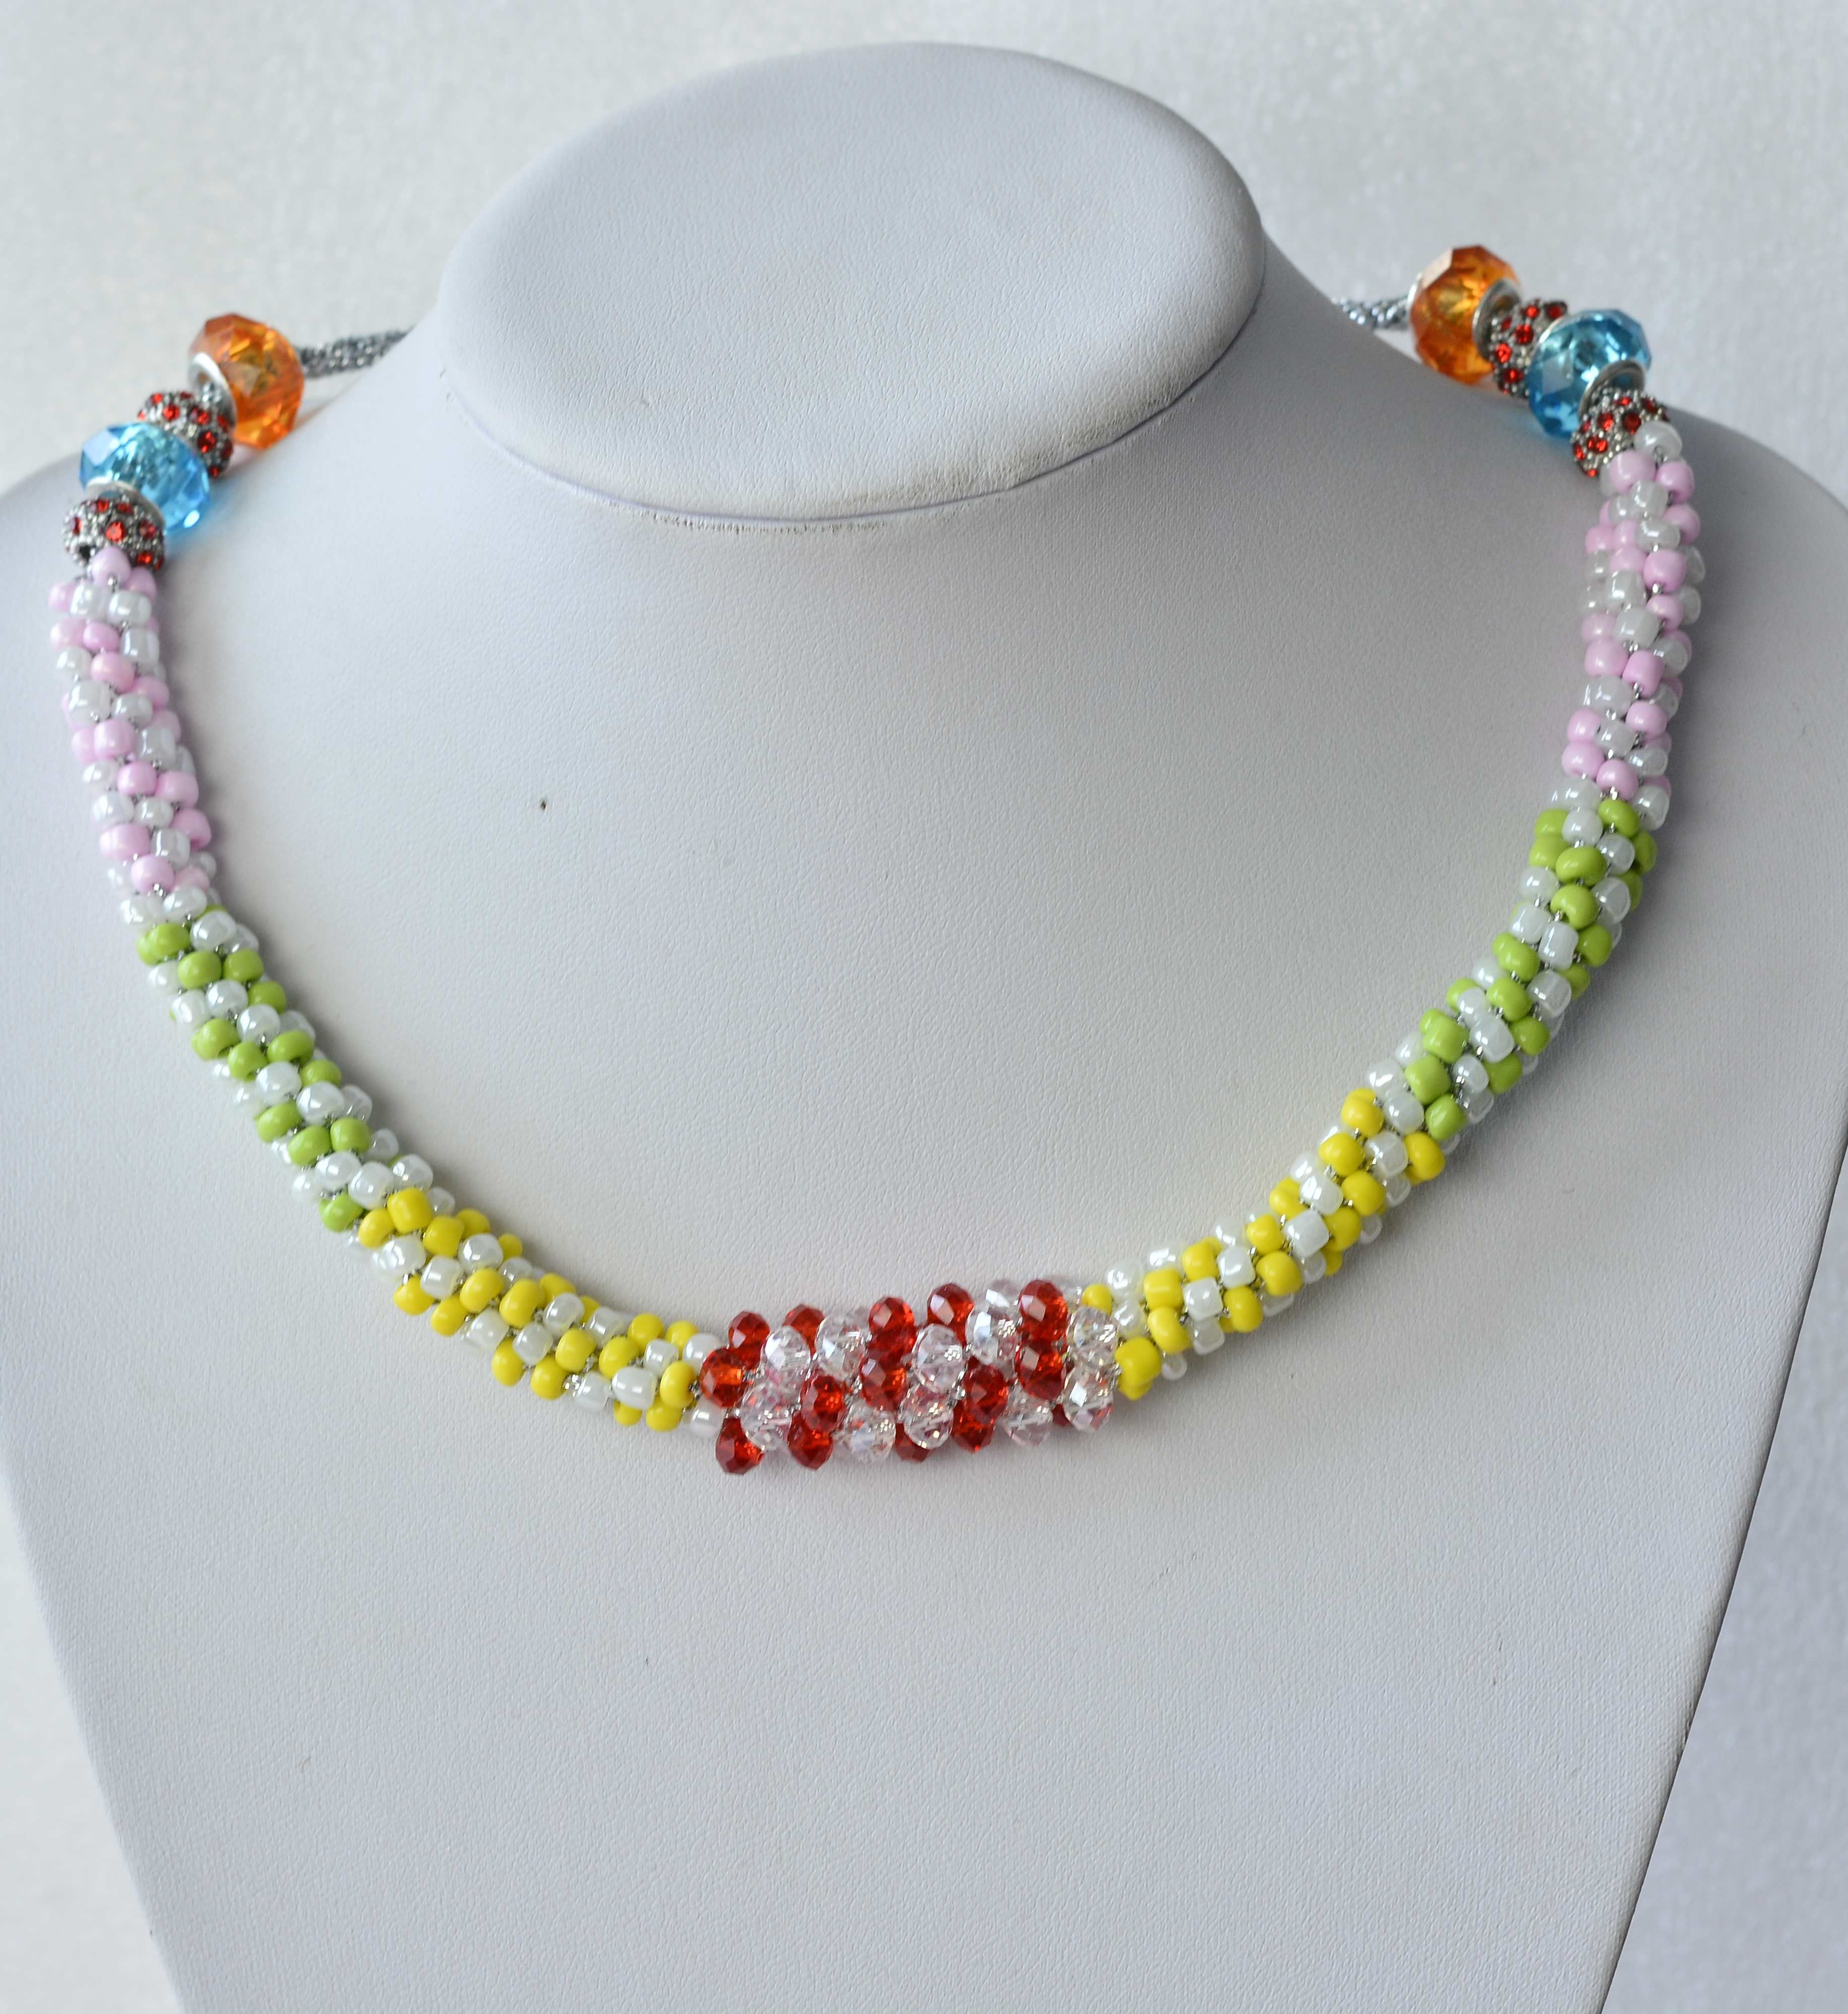 Diy Colorful #Necklace With #Beebeecraft Seed Beads And Glass Beads